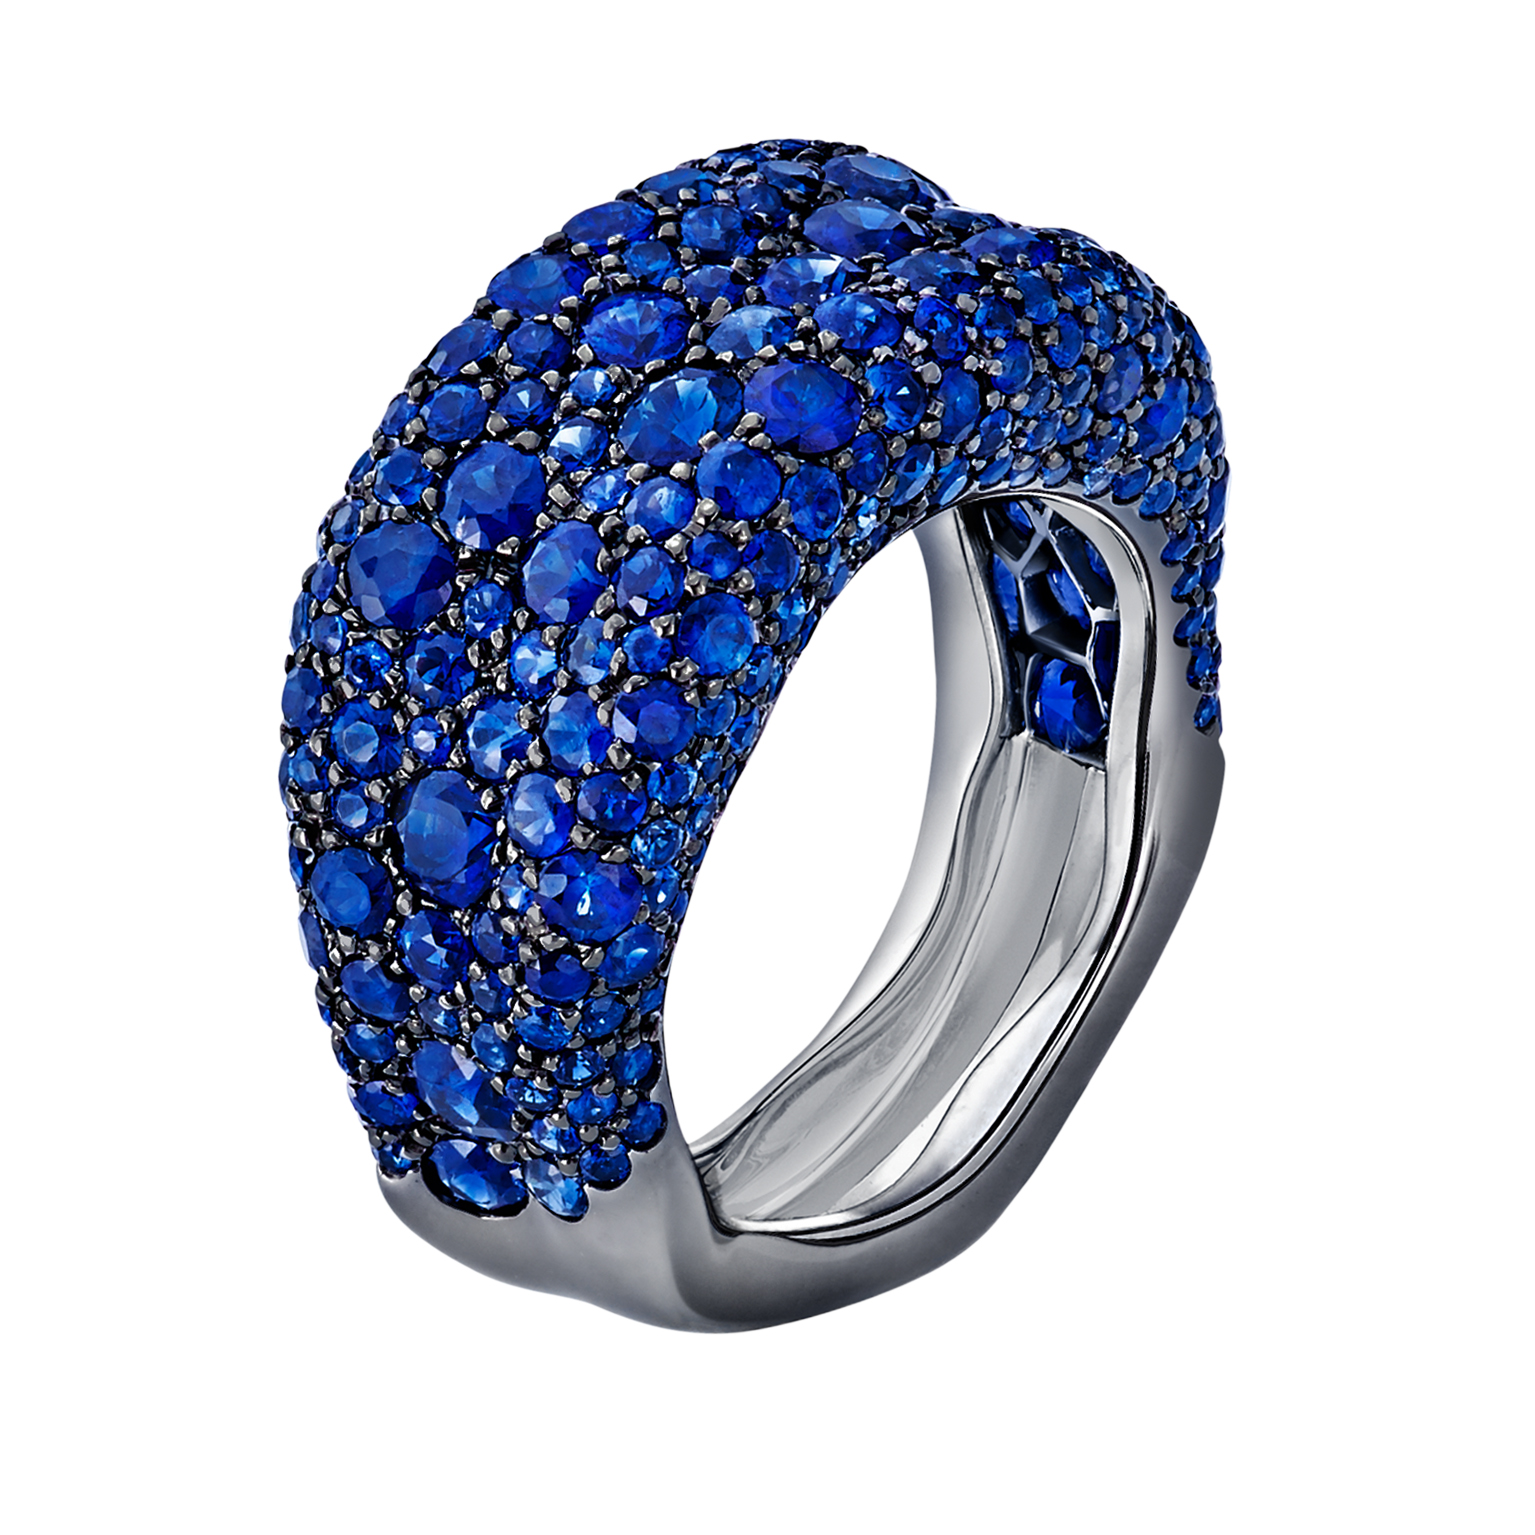 FABERGÉ EMOTION SAPPHIRE THIN RING